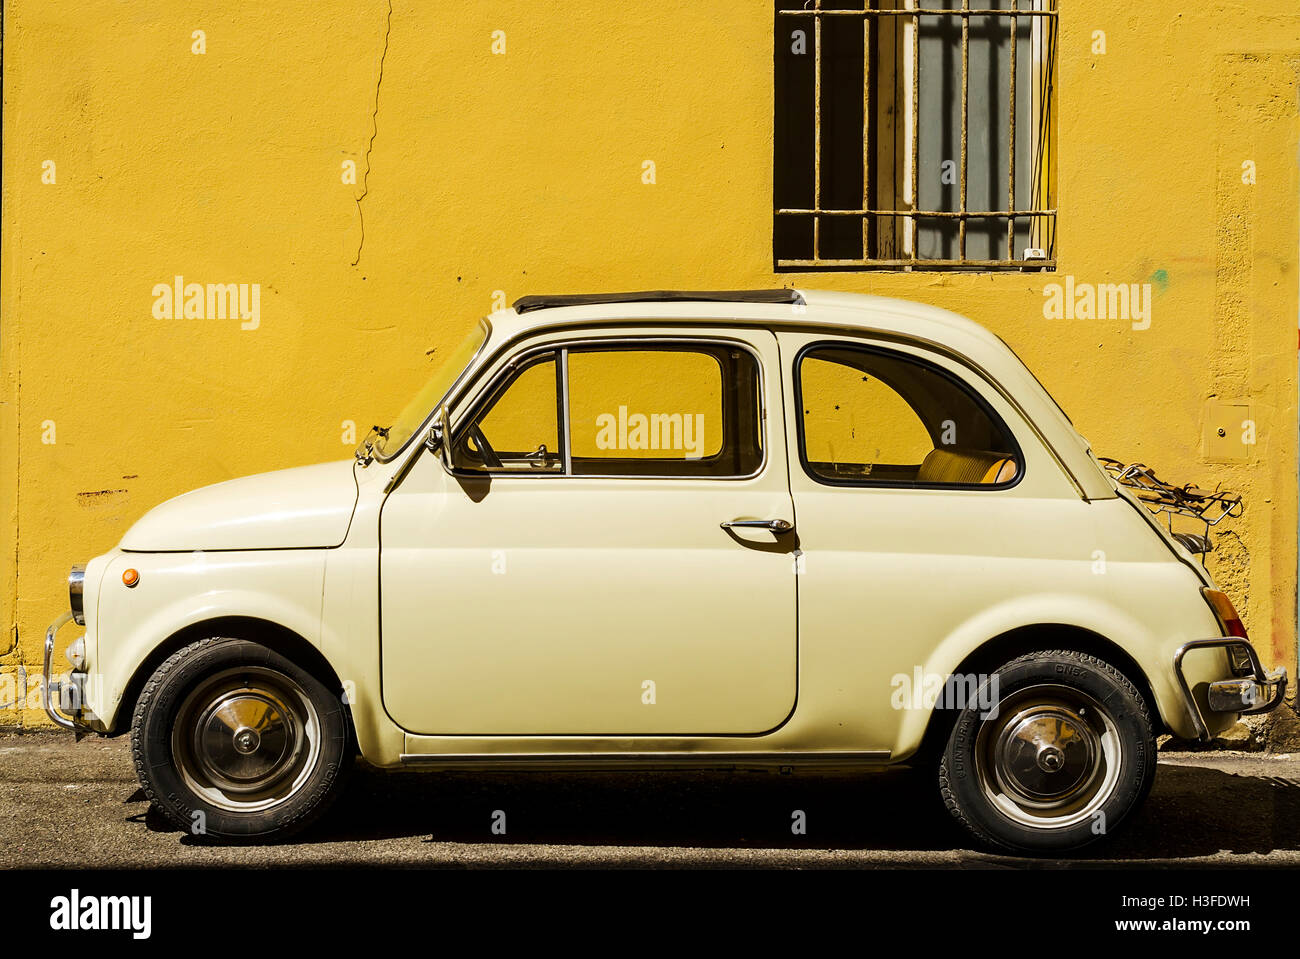 Fiat 500 Retro Fiat Cinquecento Stock Photos And Fiat Cinquecento Stock